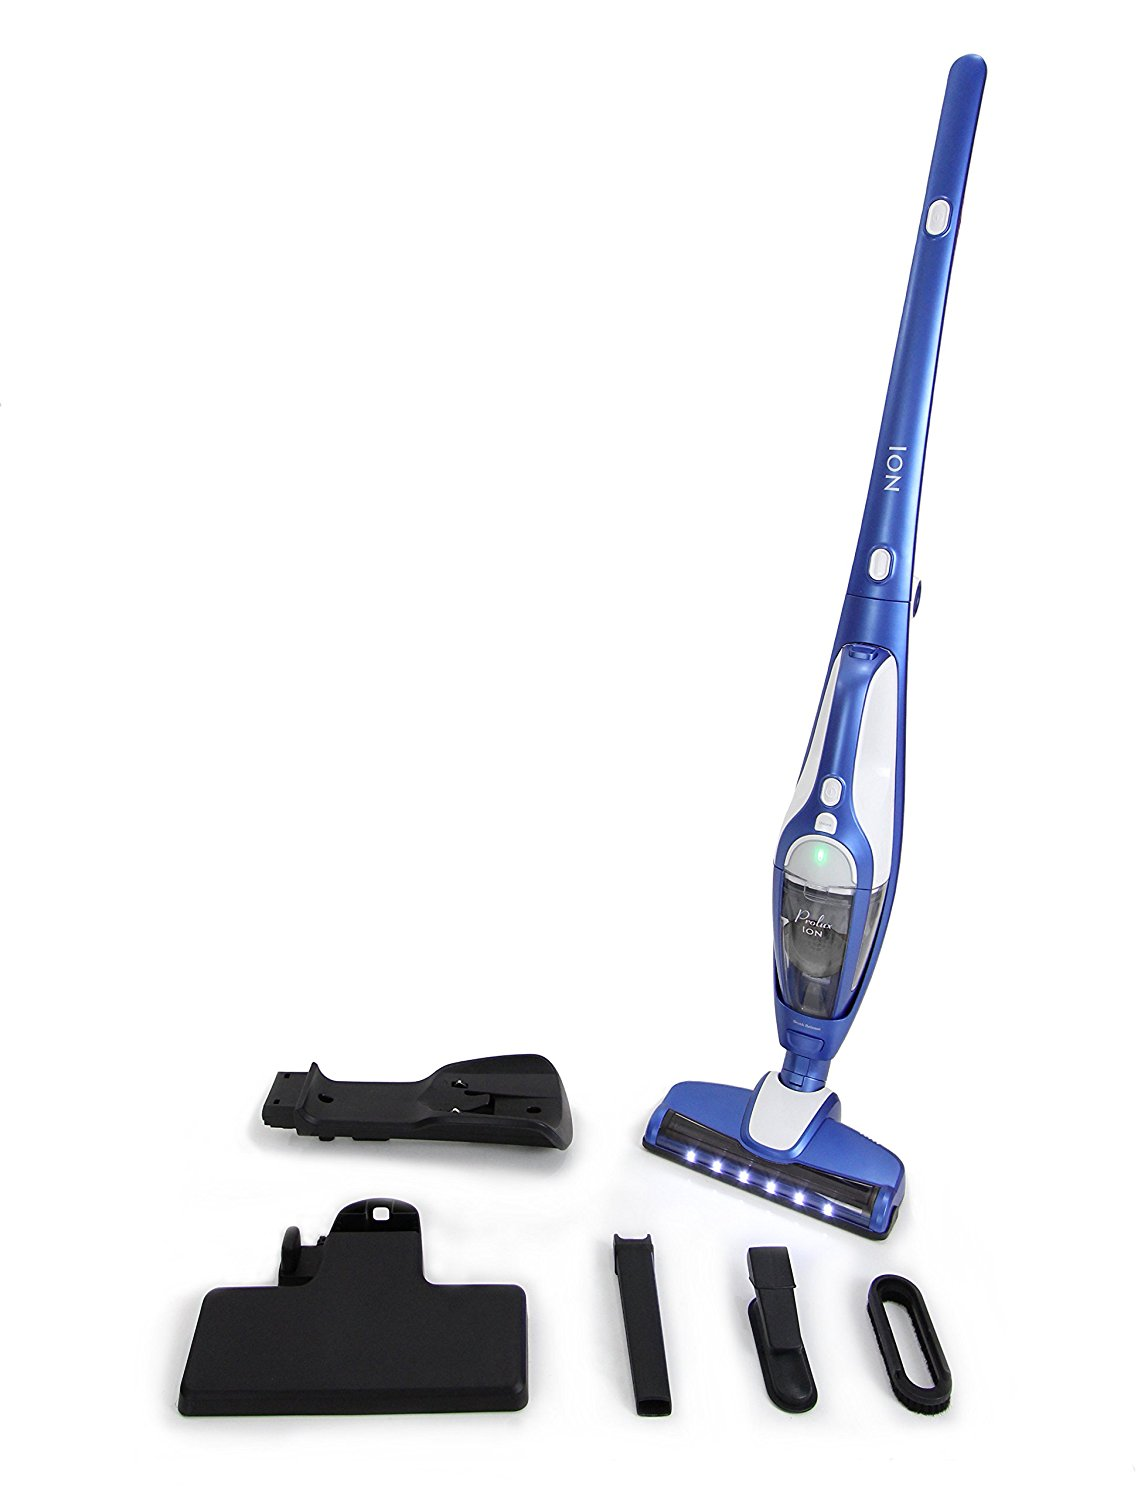 10 Best Stick Vacuum For Tile Floors Guide And Reviews